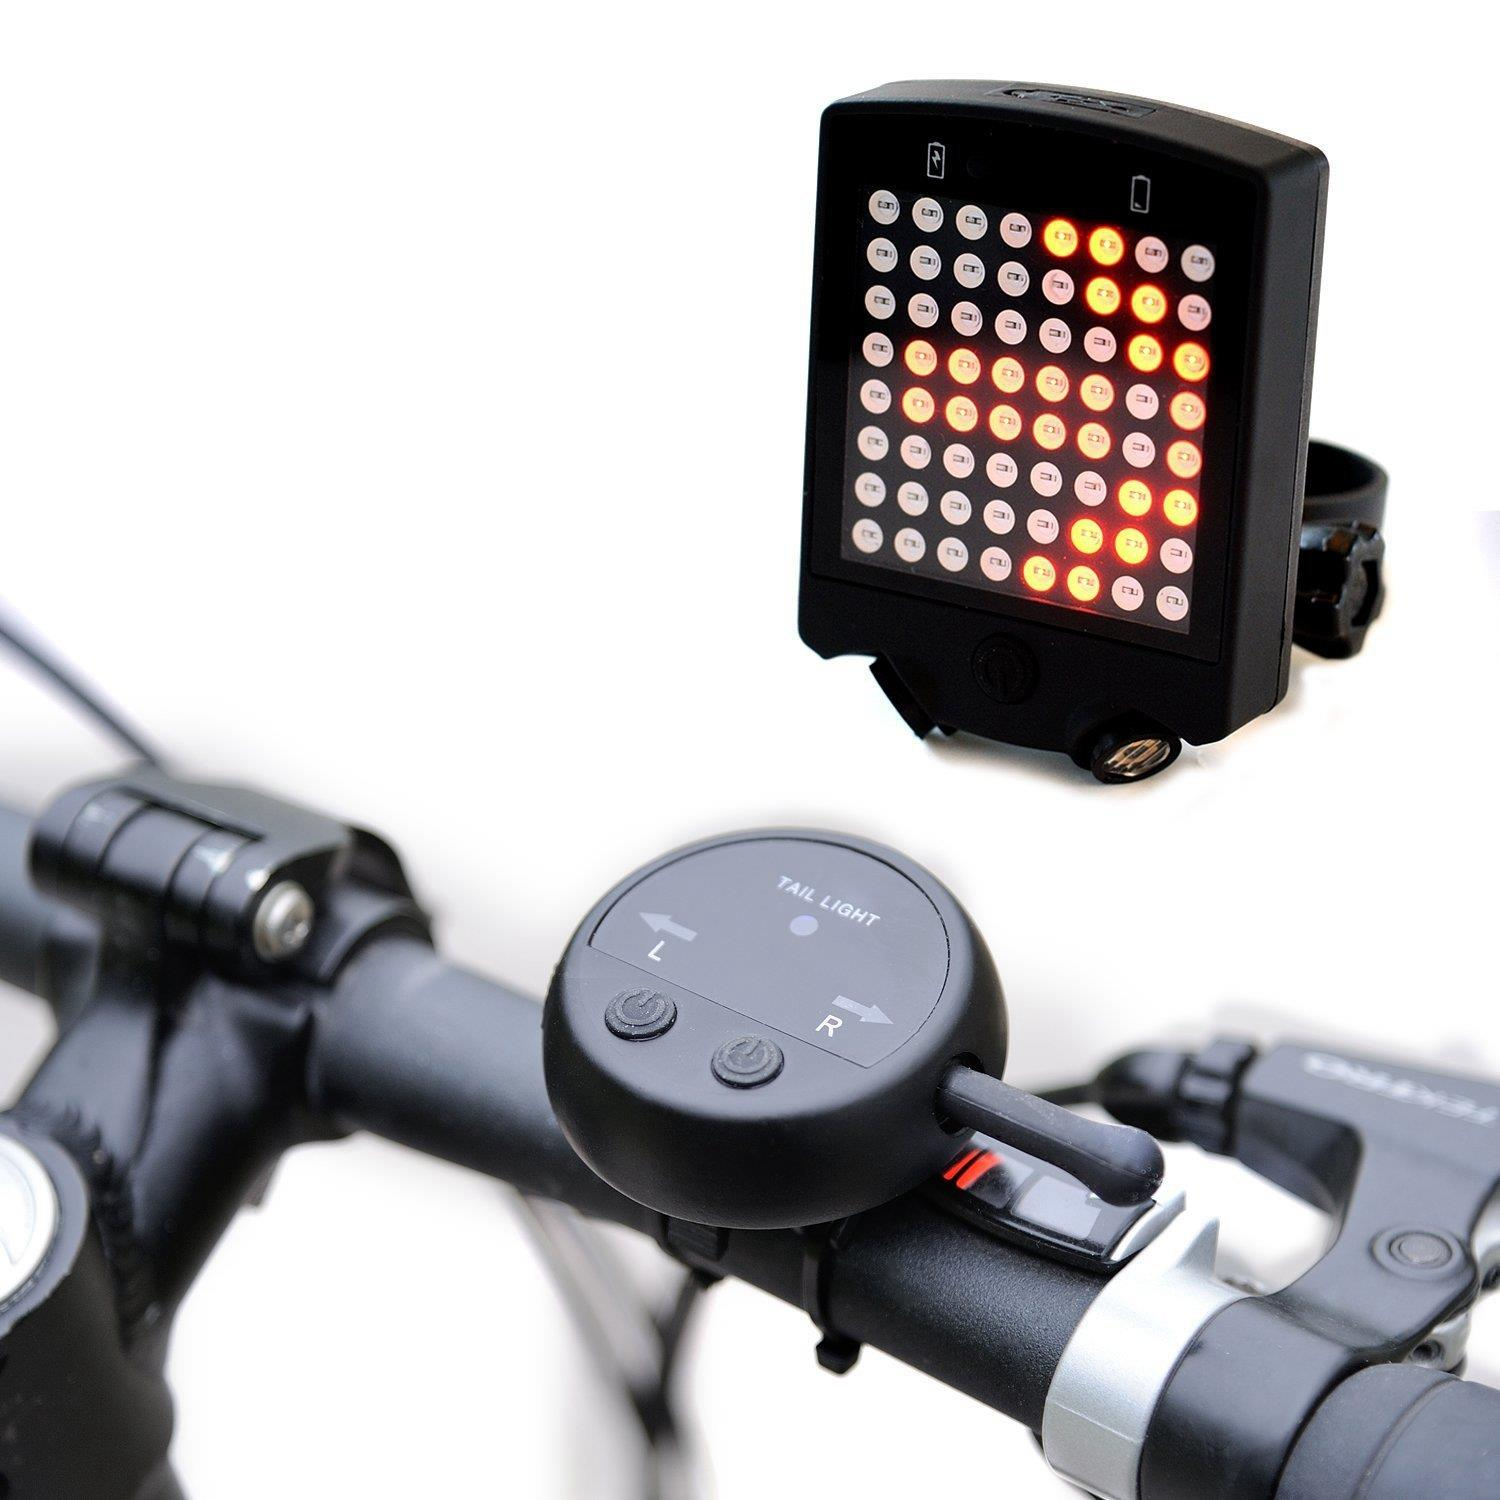 lamp dhgate spoke com best lighting product under bulb accessories light led flash wheel bicycle bike lights cycling tire